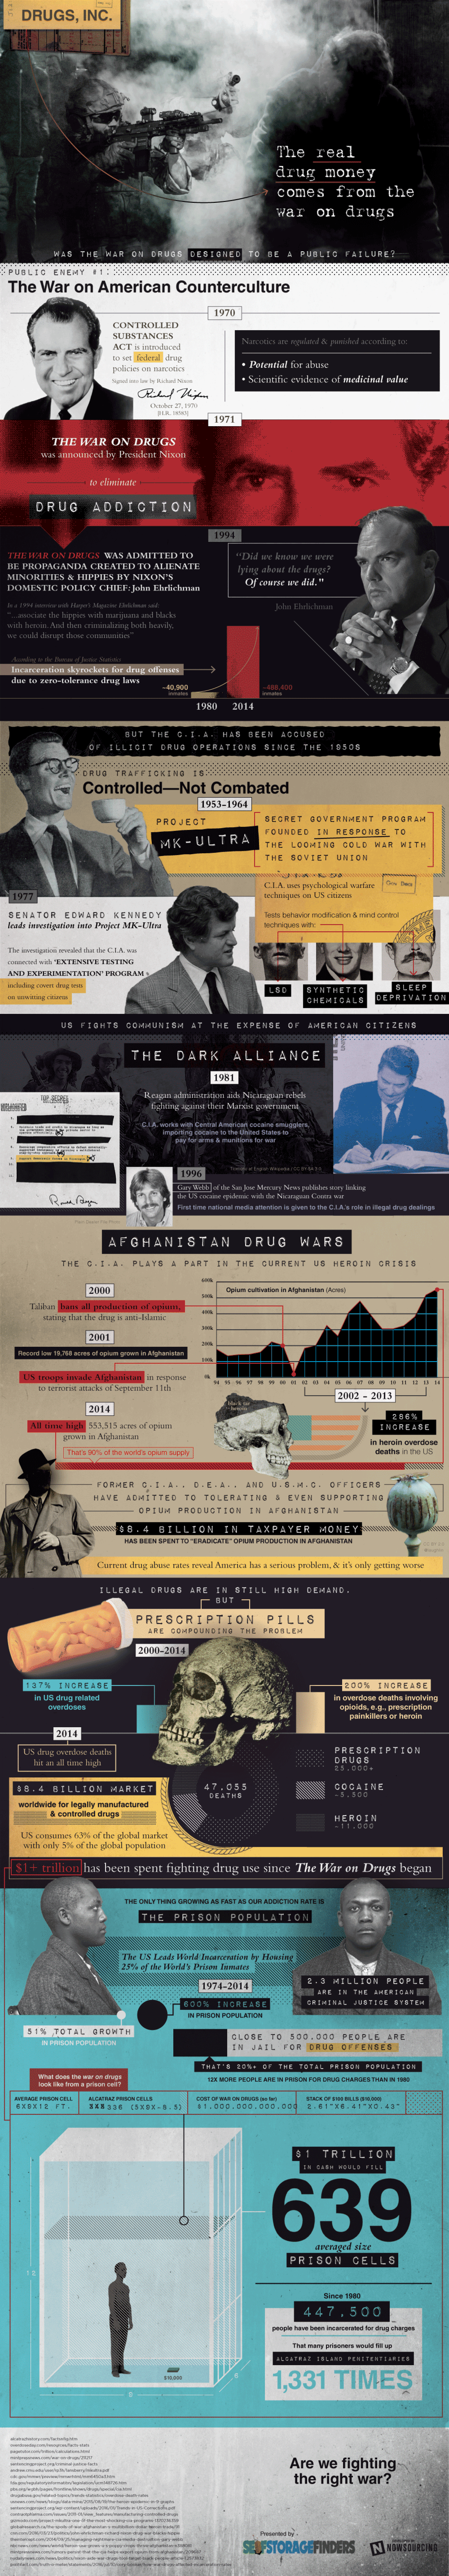 How The War On Drugs Is Failing Infographic